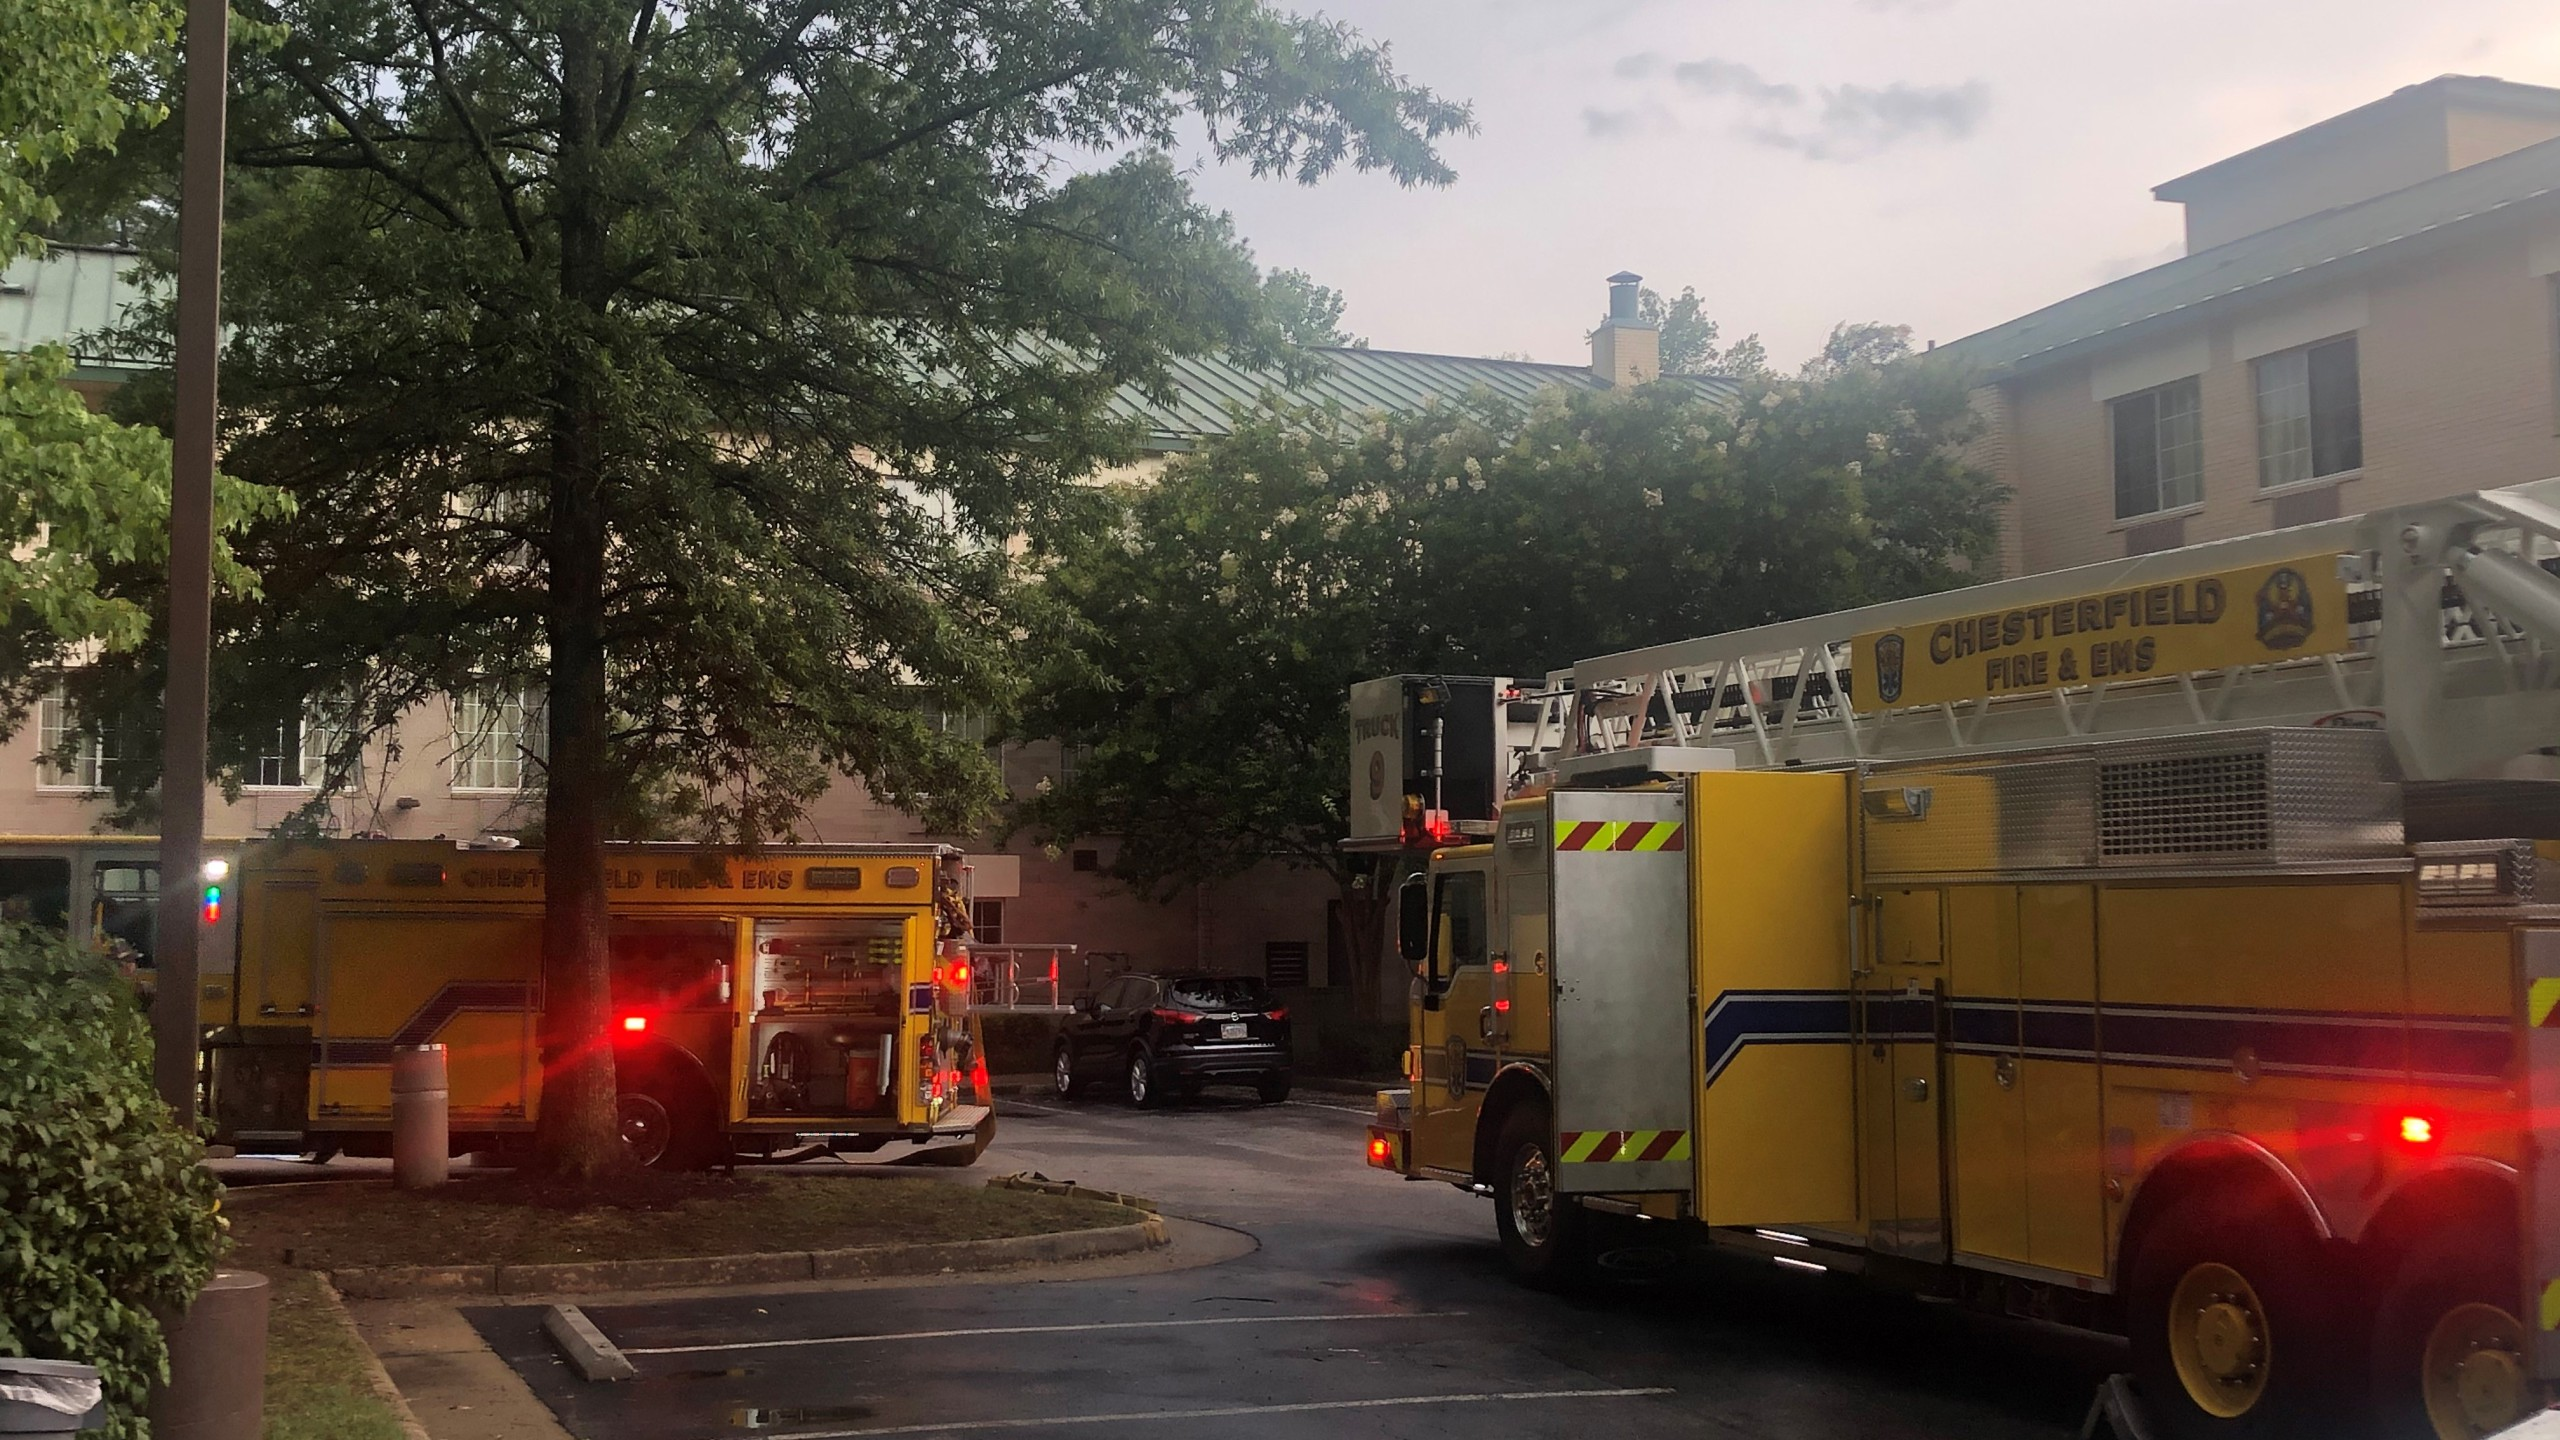 Guests evacuated from Extended Stay America near Midlothian Turnpike following fire